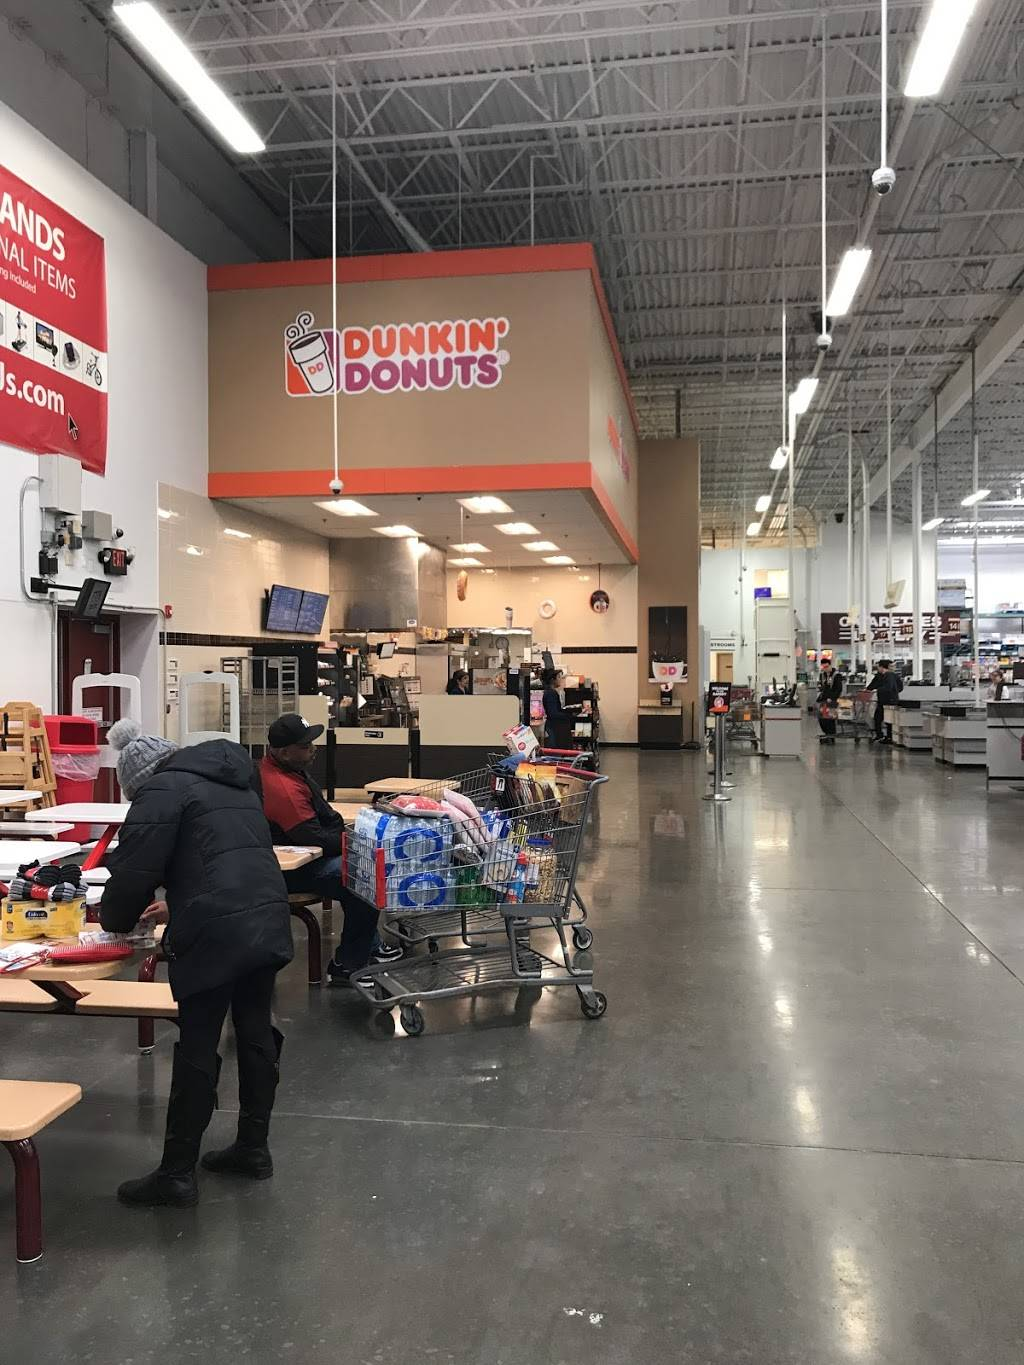 Dunkin Donuts | cafe | BJs Wholesale Club, 2100 88th St, North Bergen, NJ 07047, USA | 2012951300 OR +1 201-295-1300